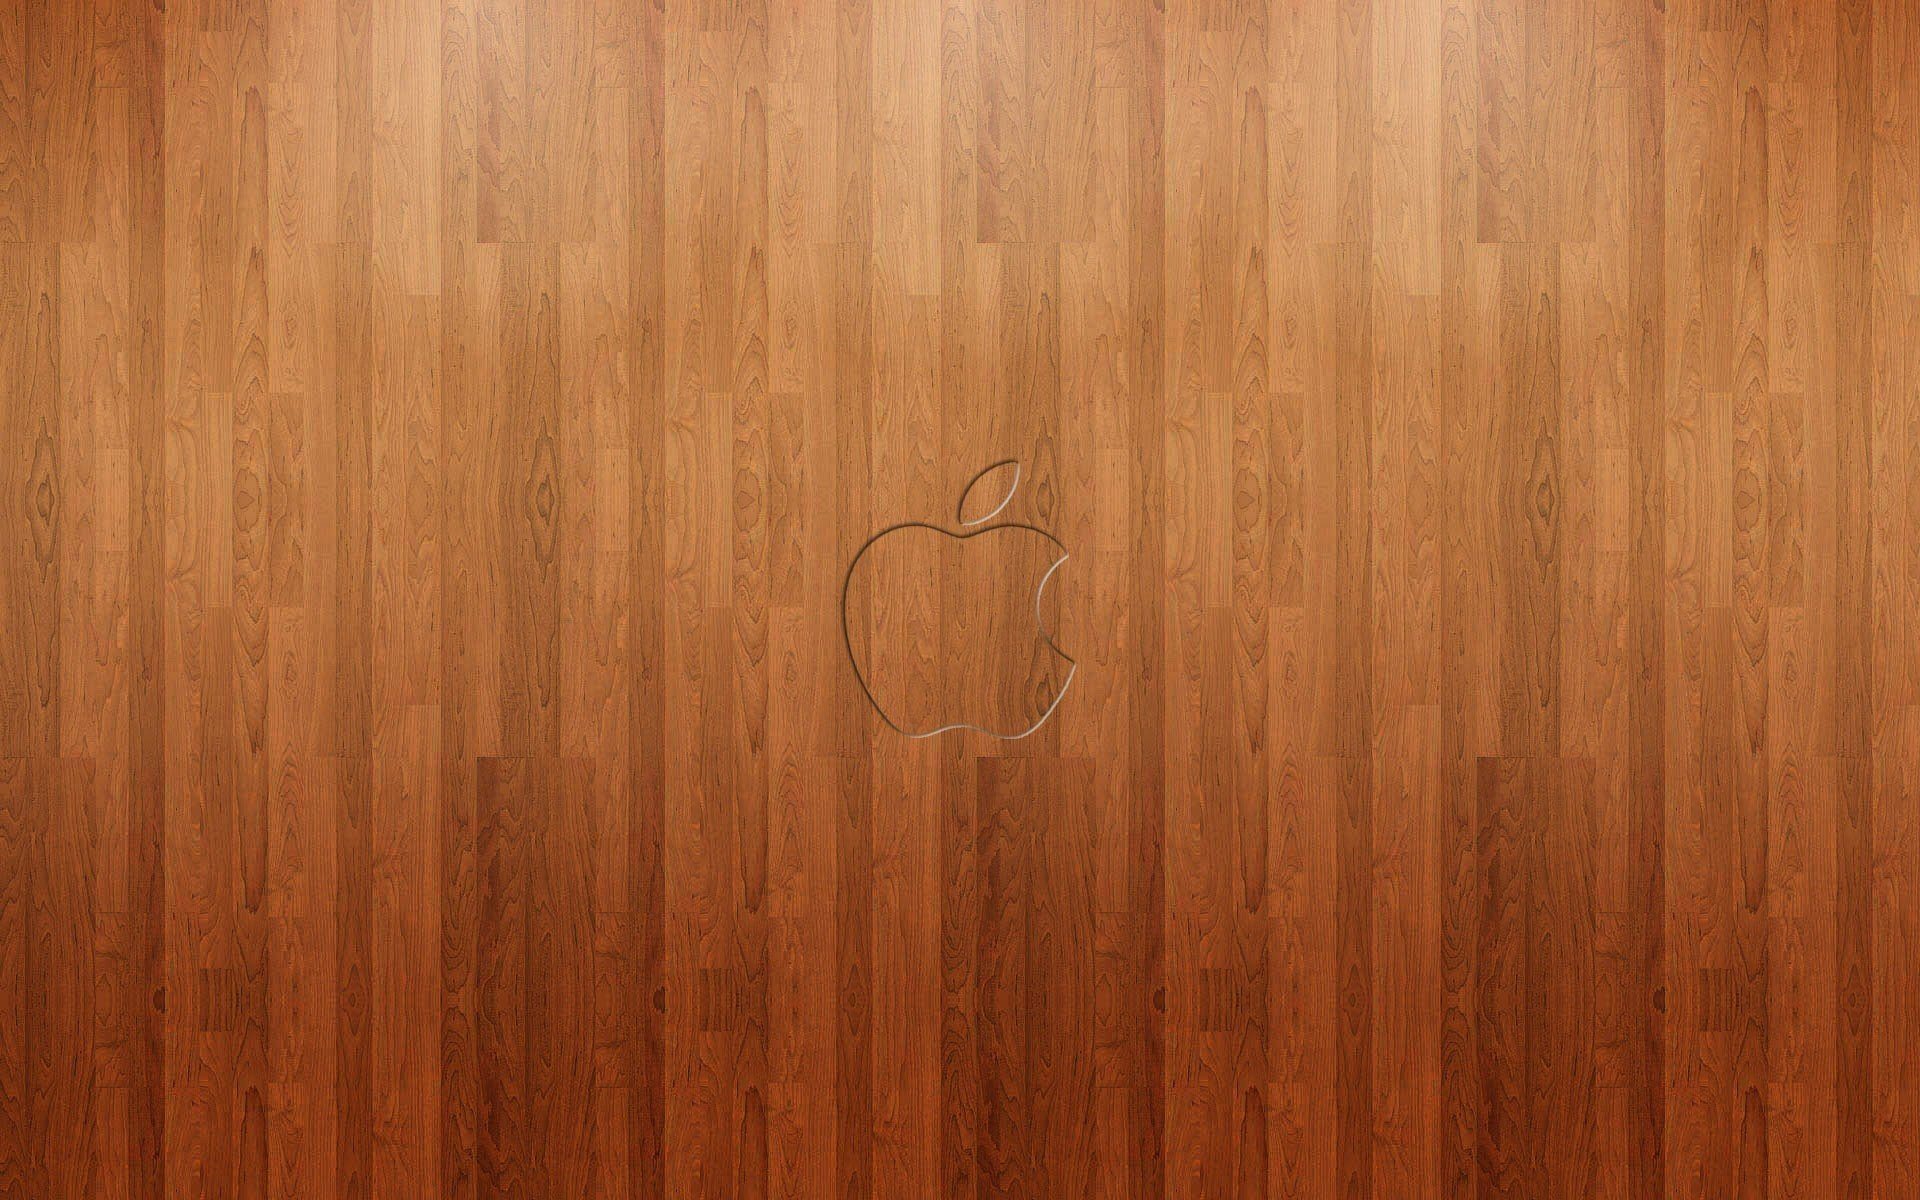 Apple Wood Wallpaper